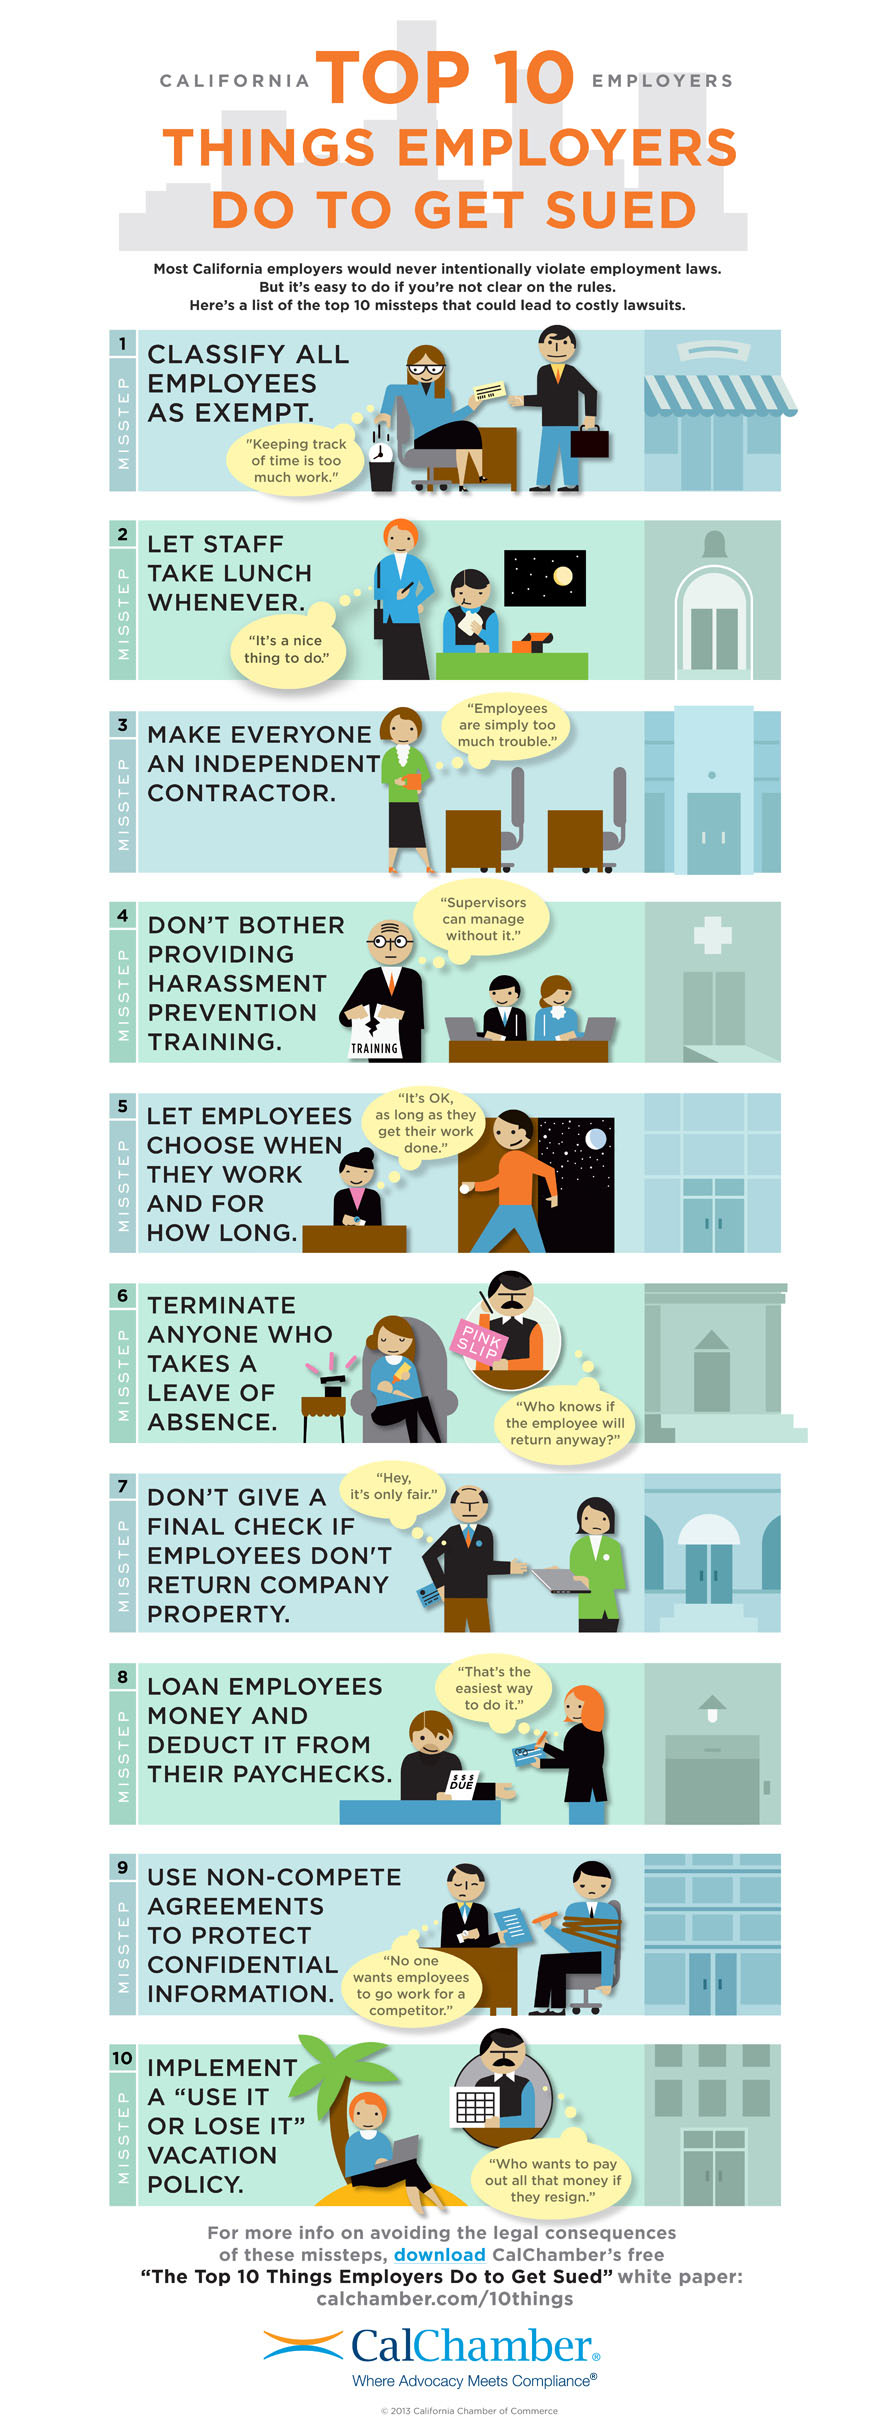 10-ways-to-violate-labor-laws-and-get-sued-infographic